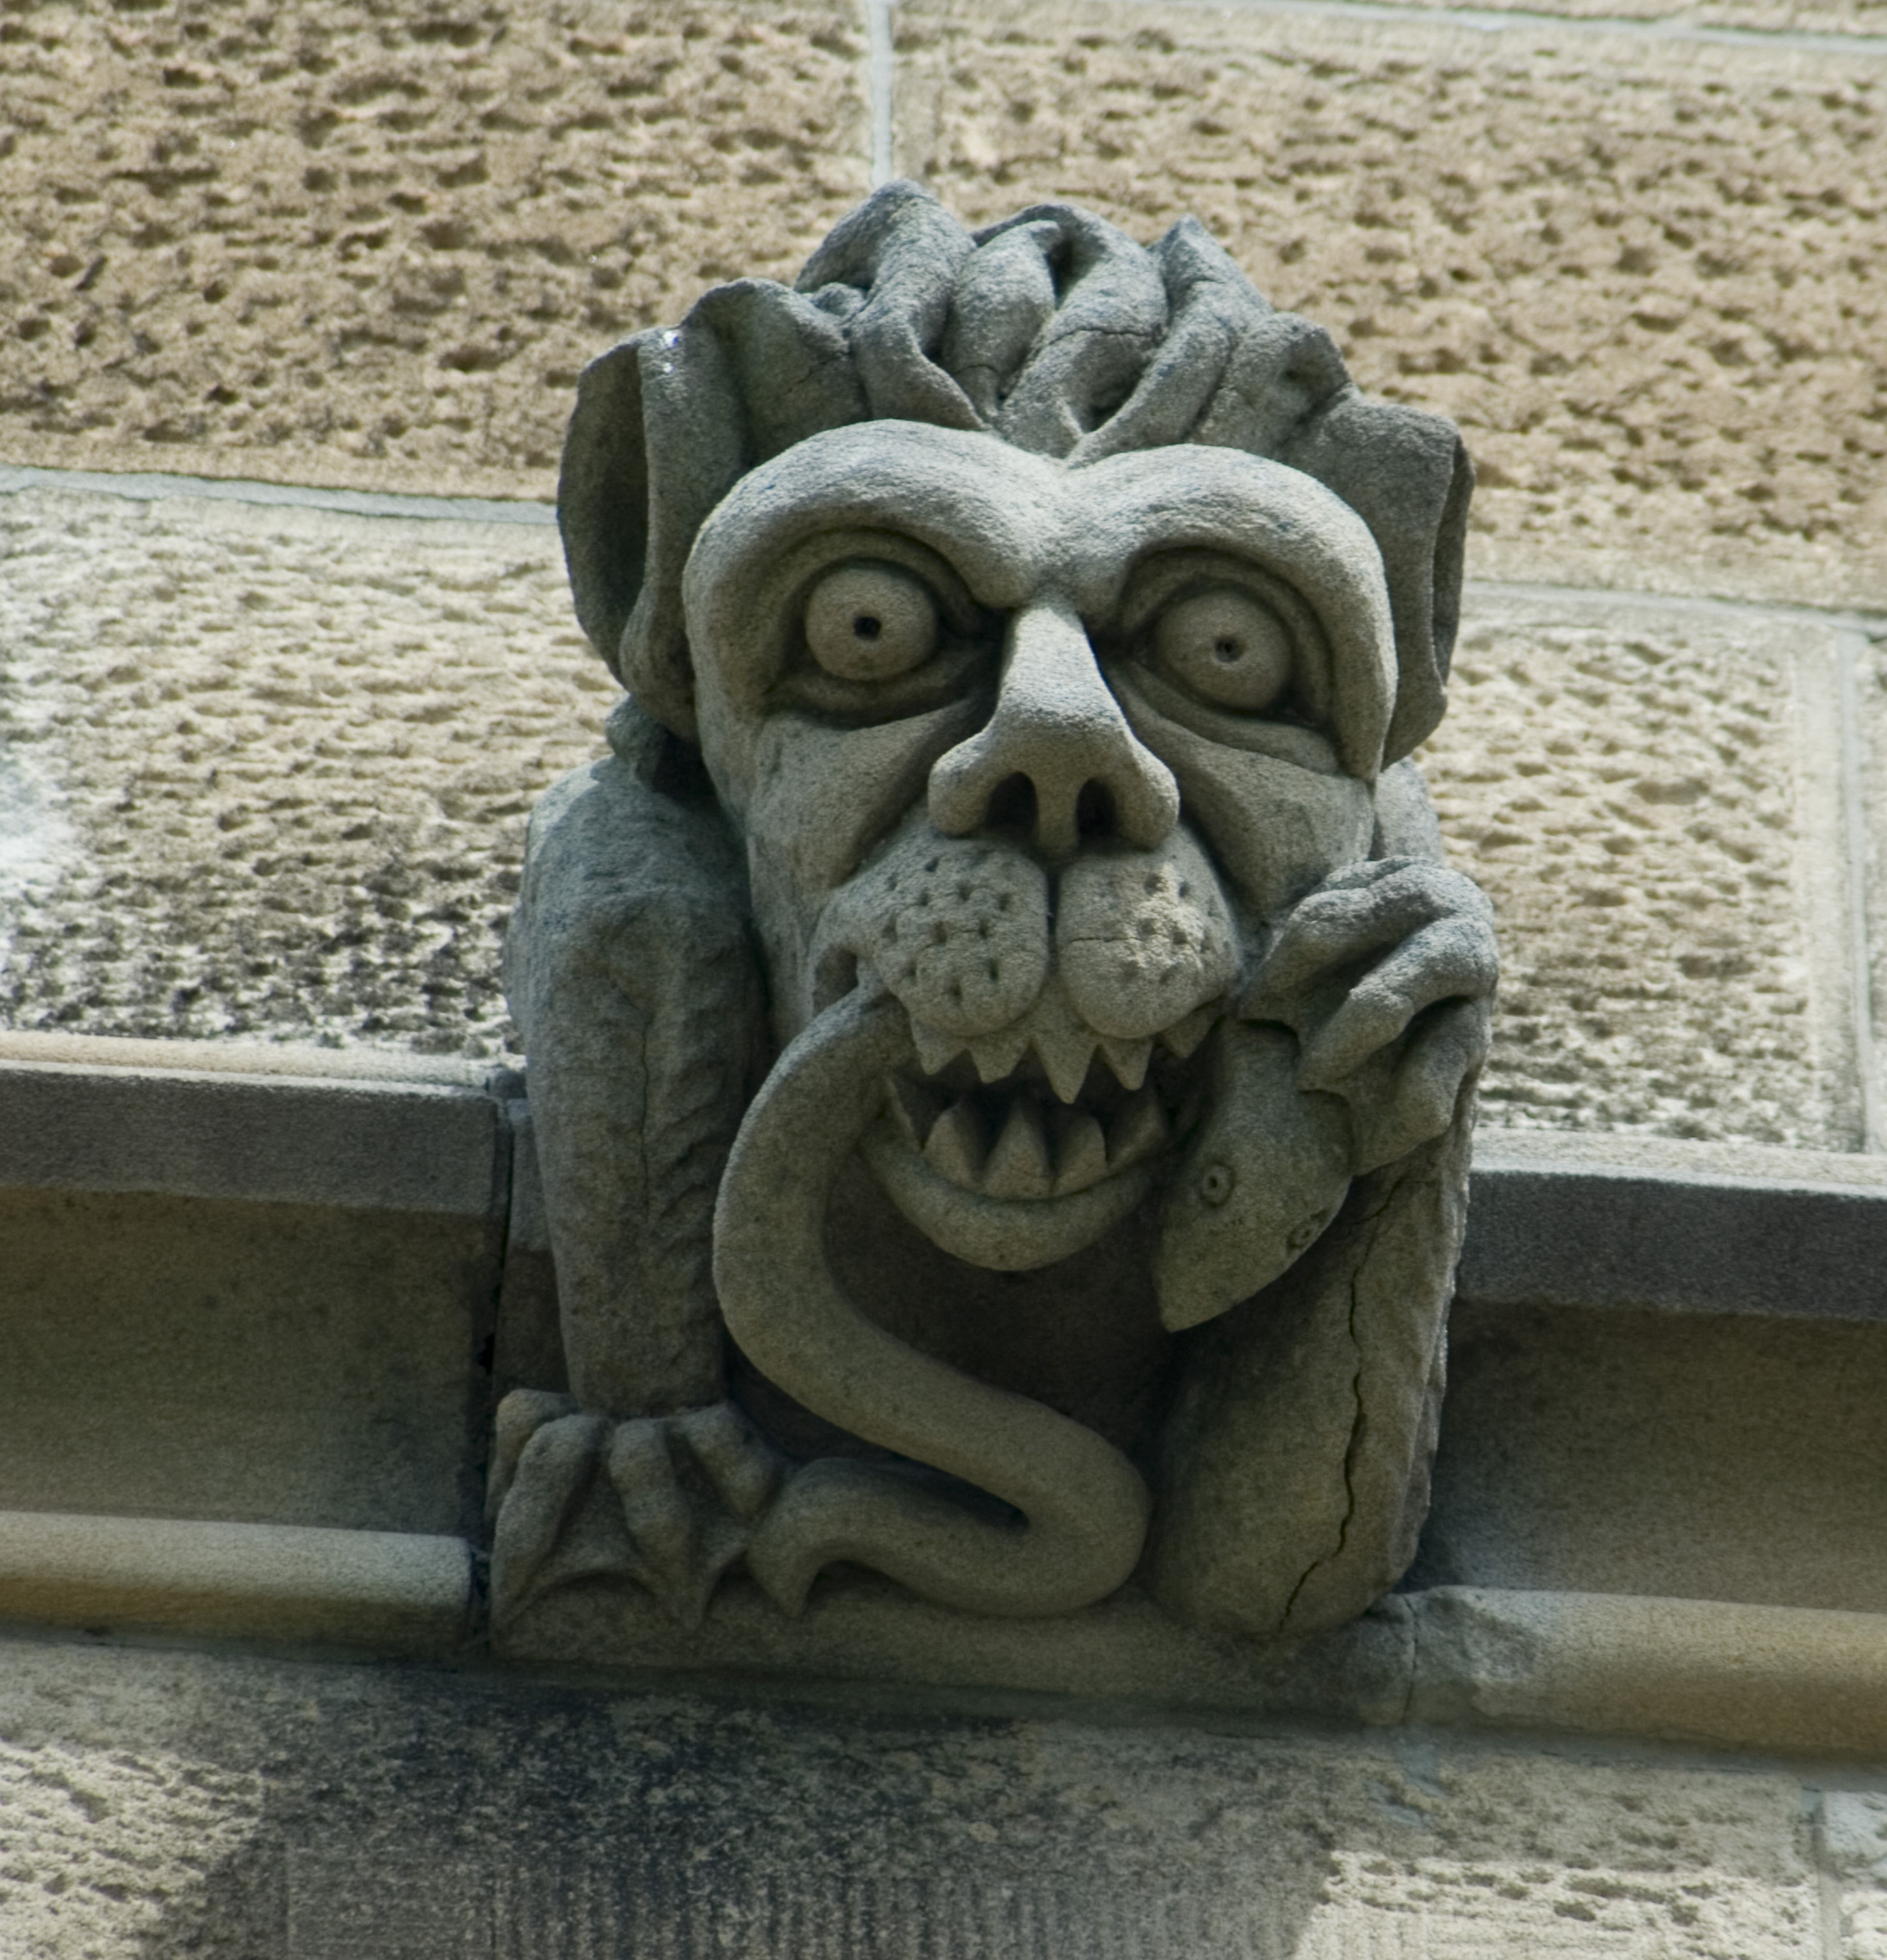 carved stone chimera or grotesque juting out from a wall